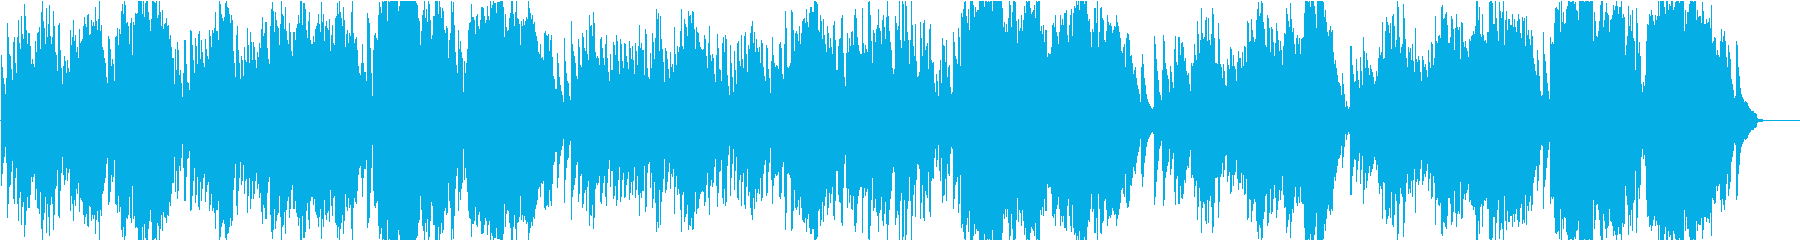 Chopin's melancholy atmosphere in Waltz C sharp minor's reproduced waveform